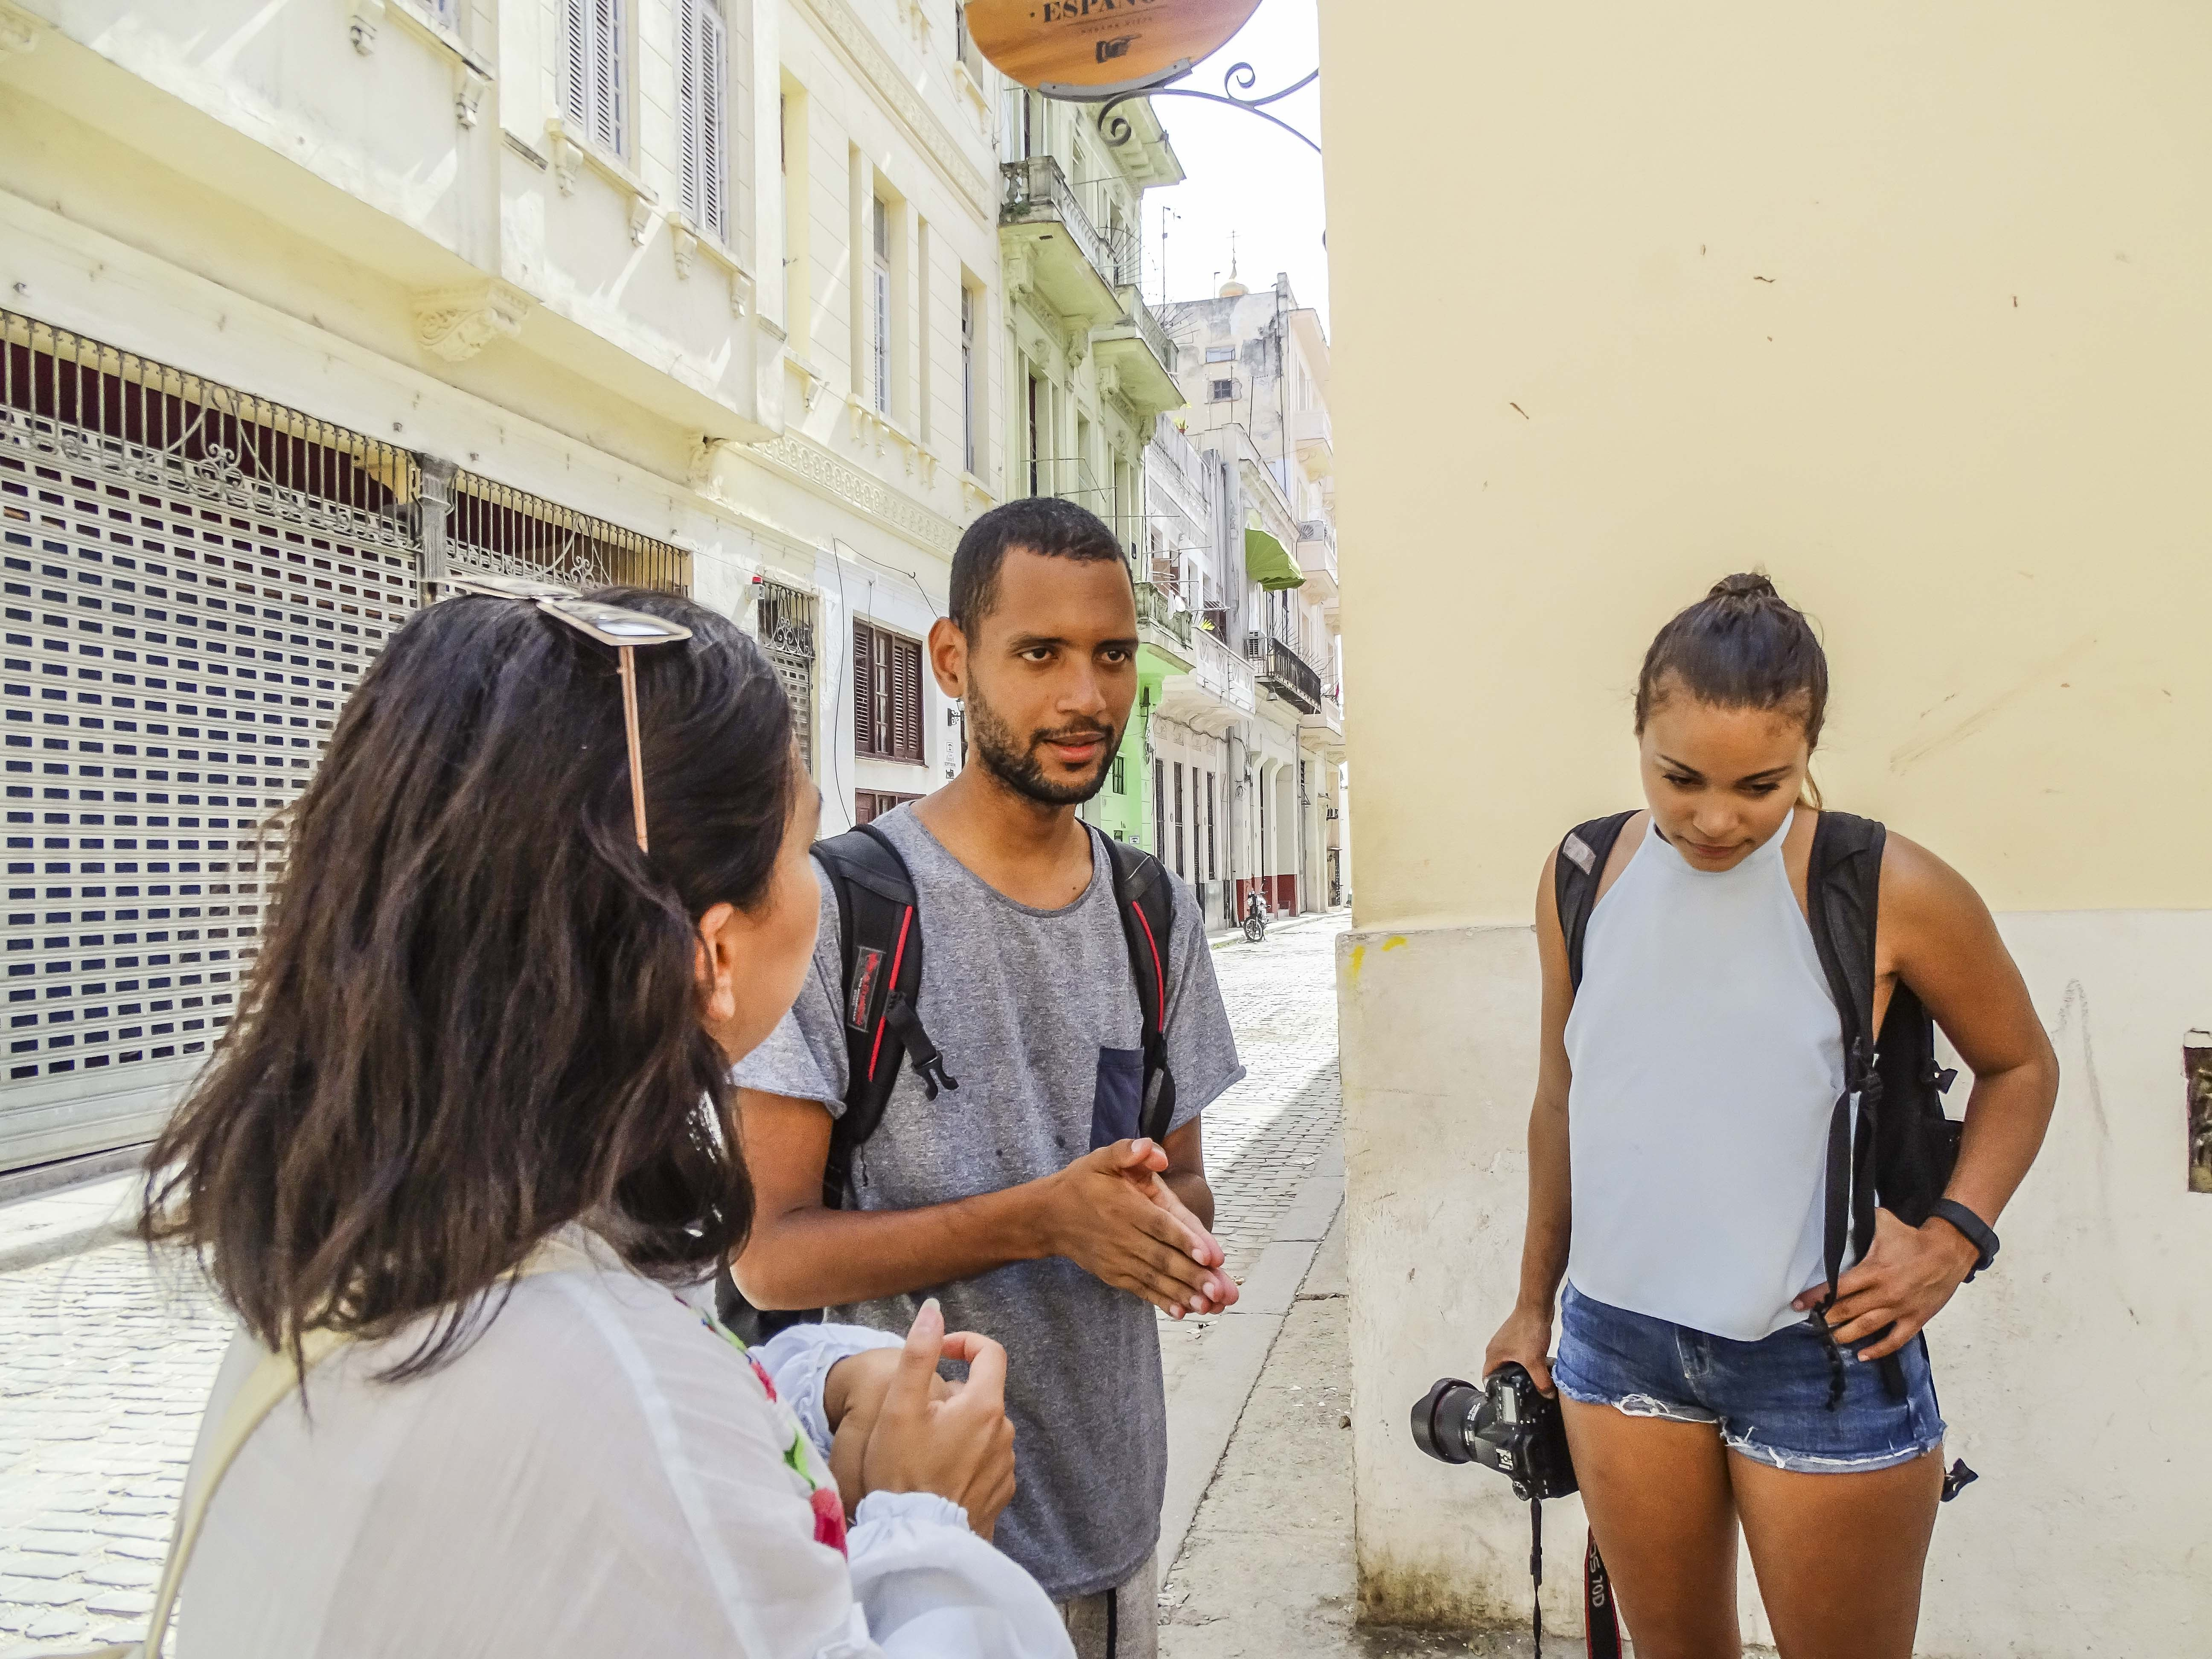 Architectural tour with Nguyen Barrera (center)   © Amber C. Snider